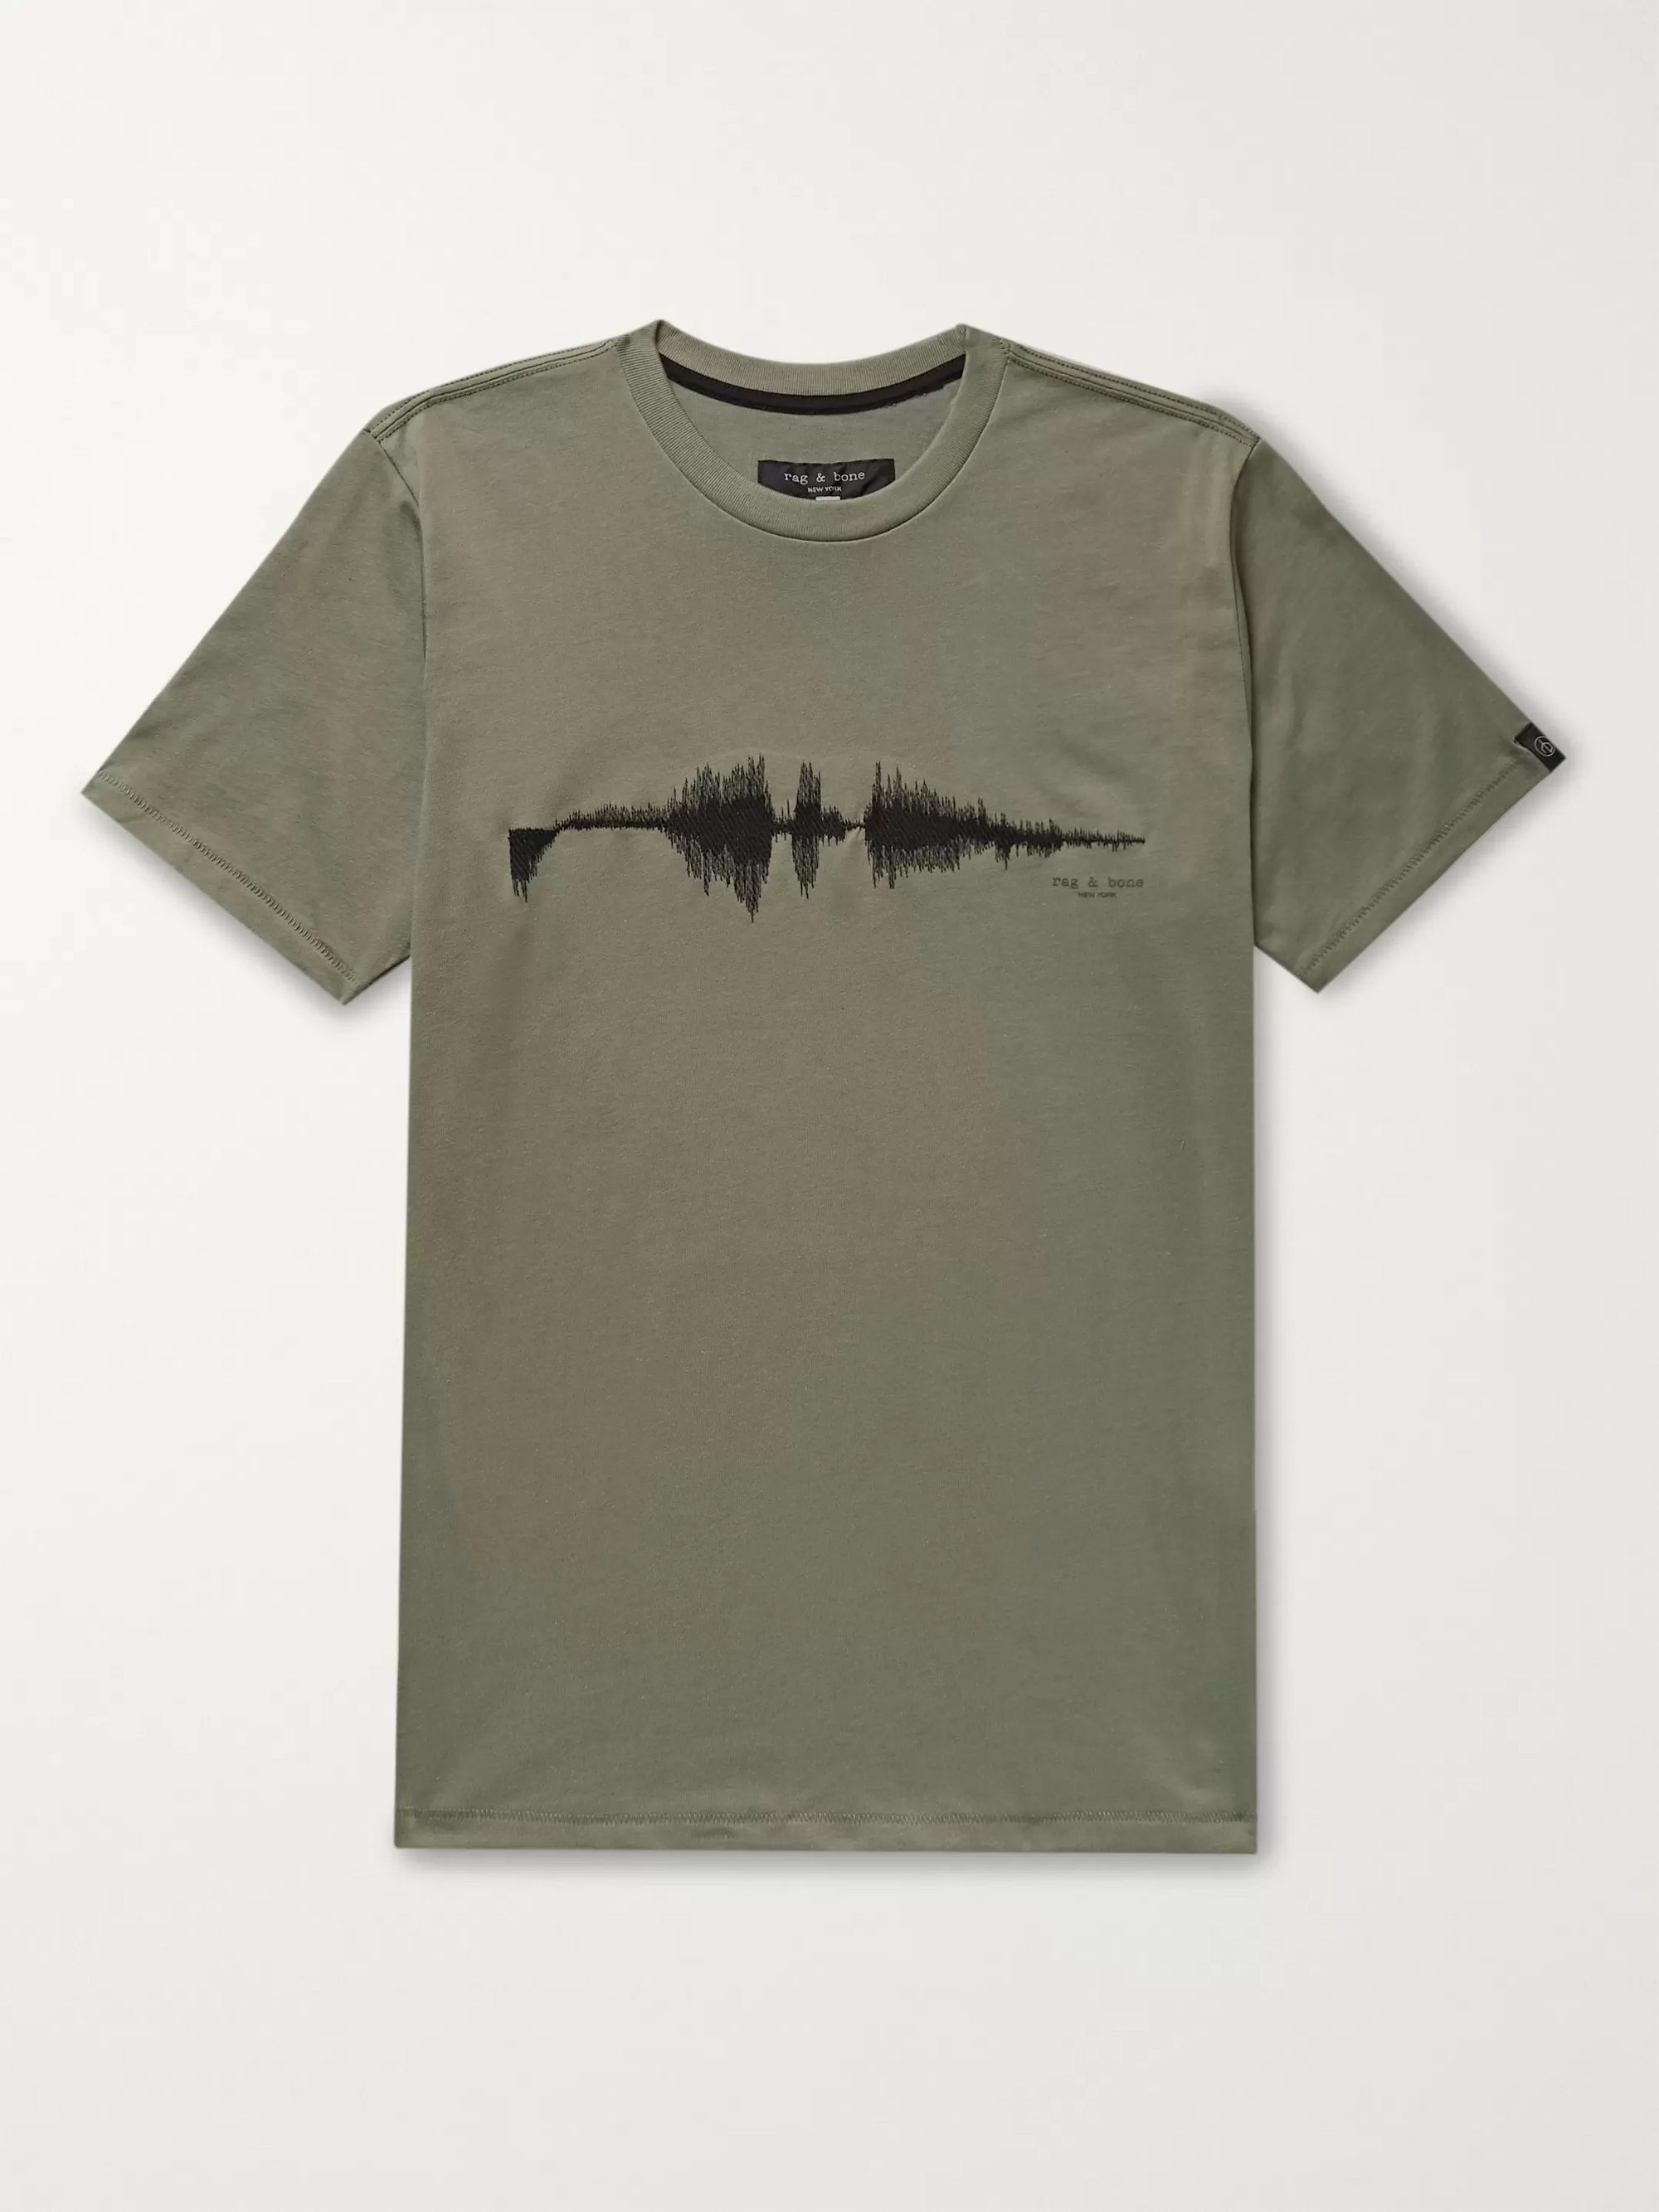 Sound Wave Embroidered Cotton Jersey T Shirt by Rag & Bone